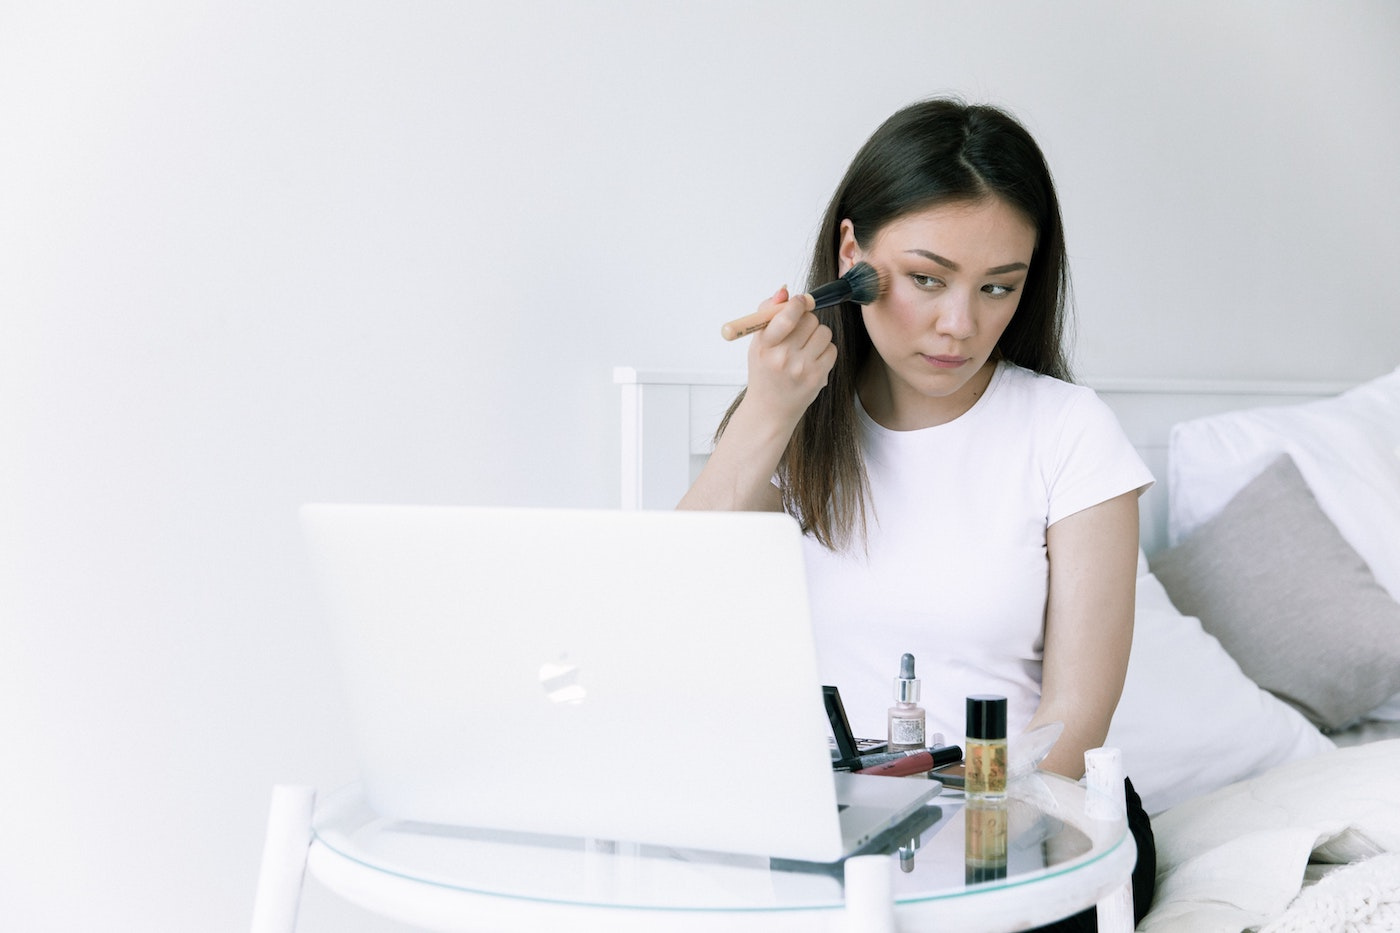 The Digital Beauty Sales Experience